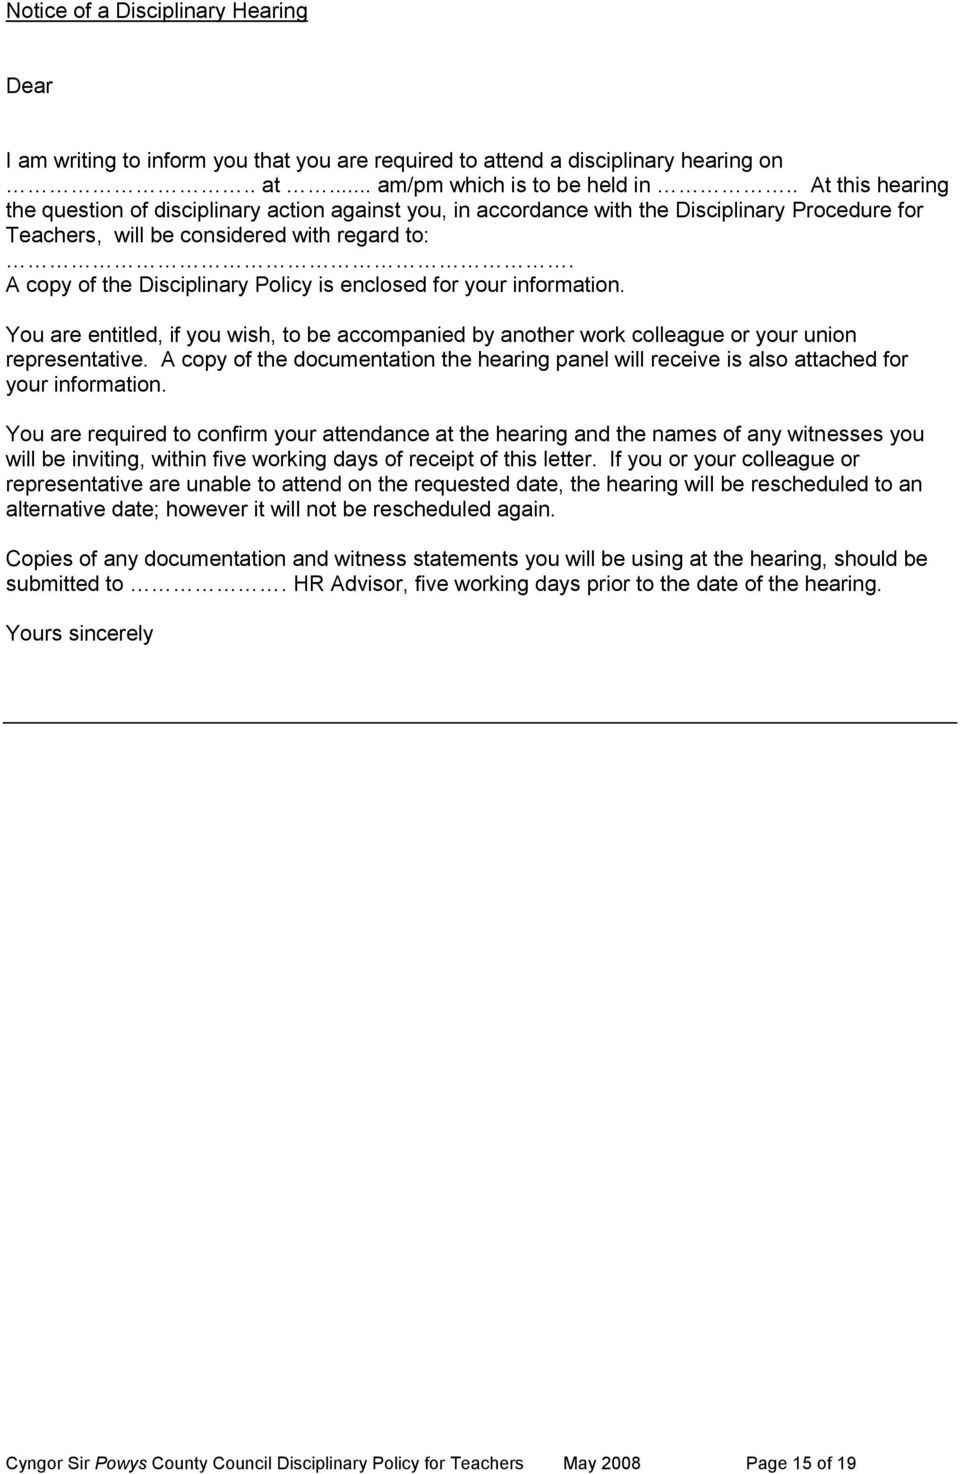 A copy of the Disciplinary Policy is enclosed for your information. You are entitled, if you wish, to be accompanied by another work colleague or your union representative.